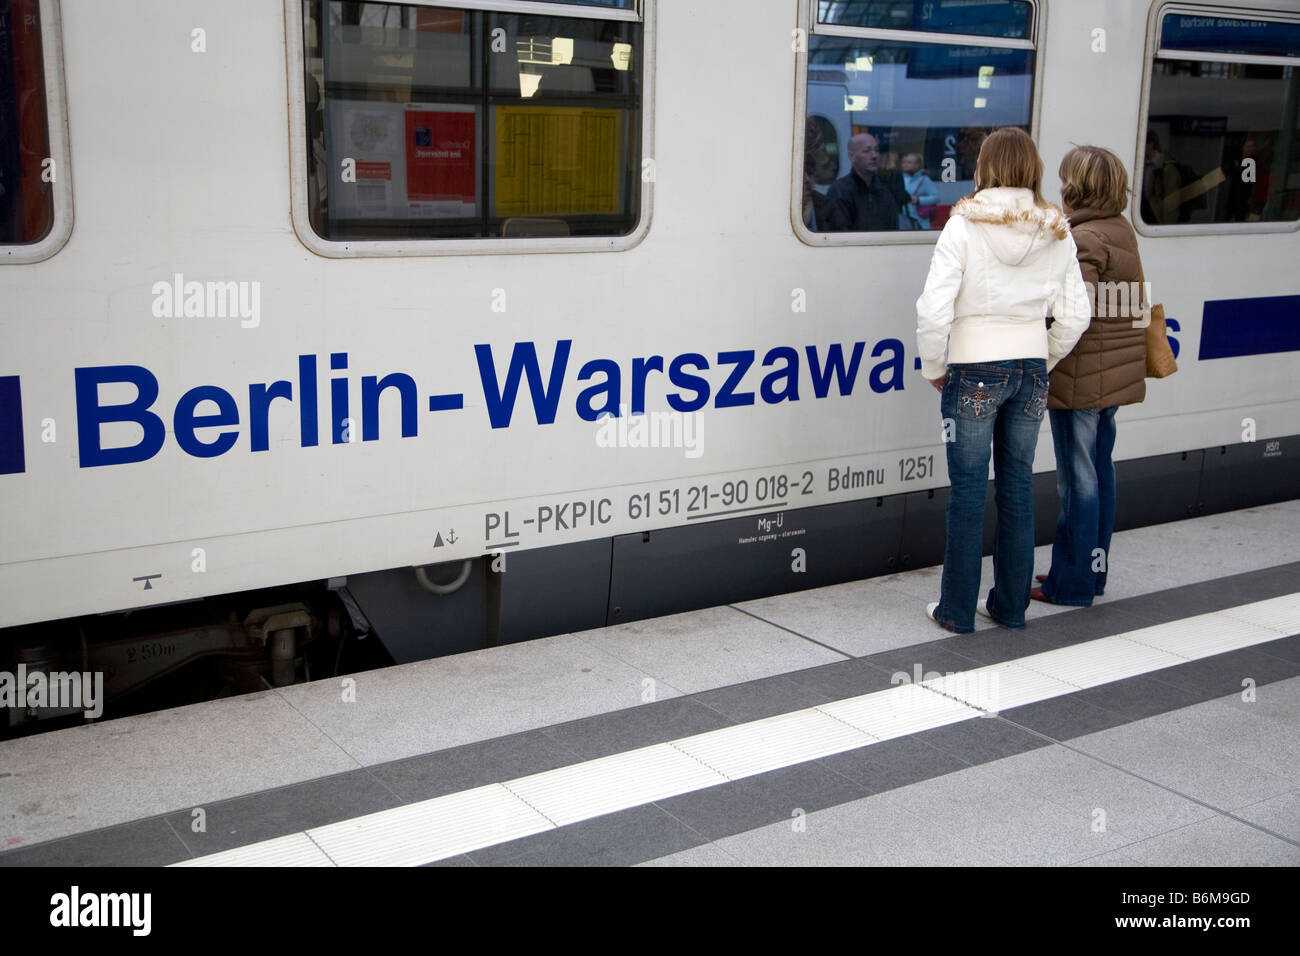 Berlin-Warschau-Express Train - Stock Image